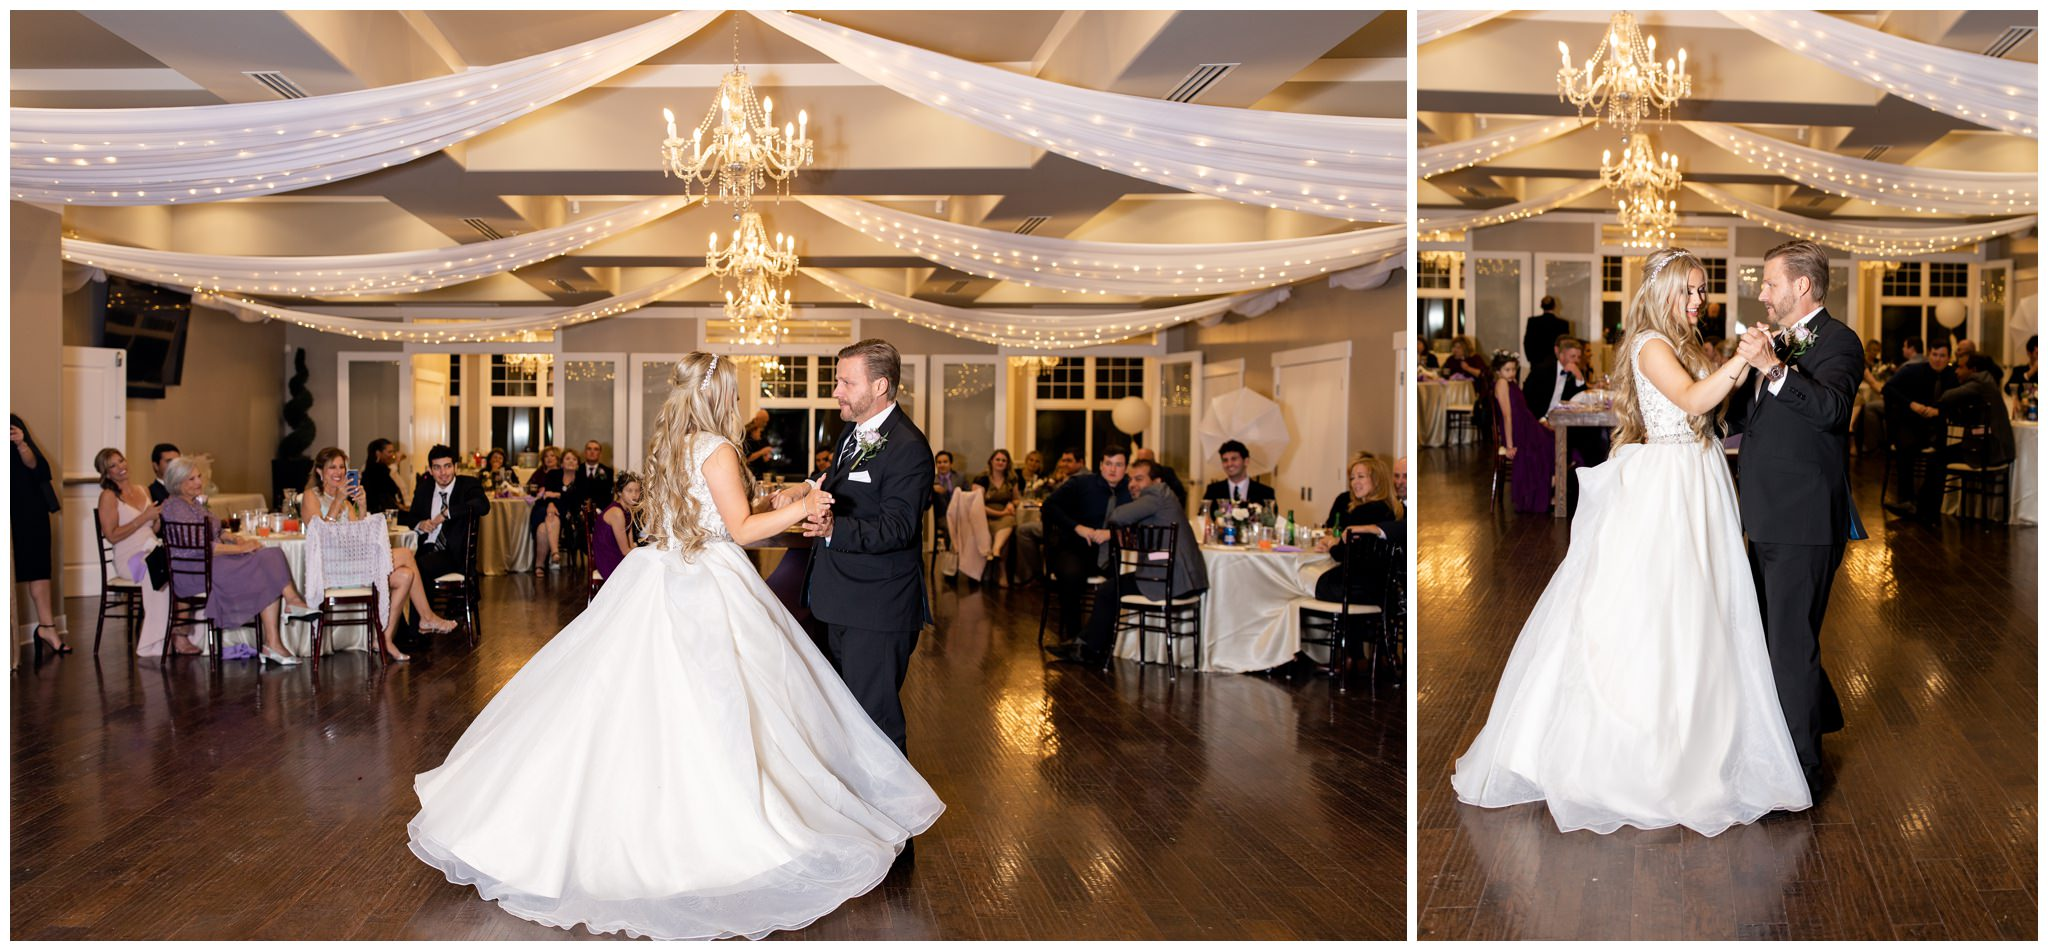 Bride and father dancing at wedding